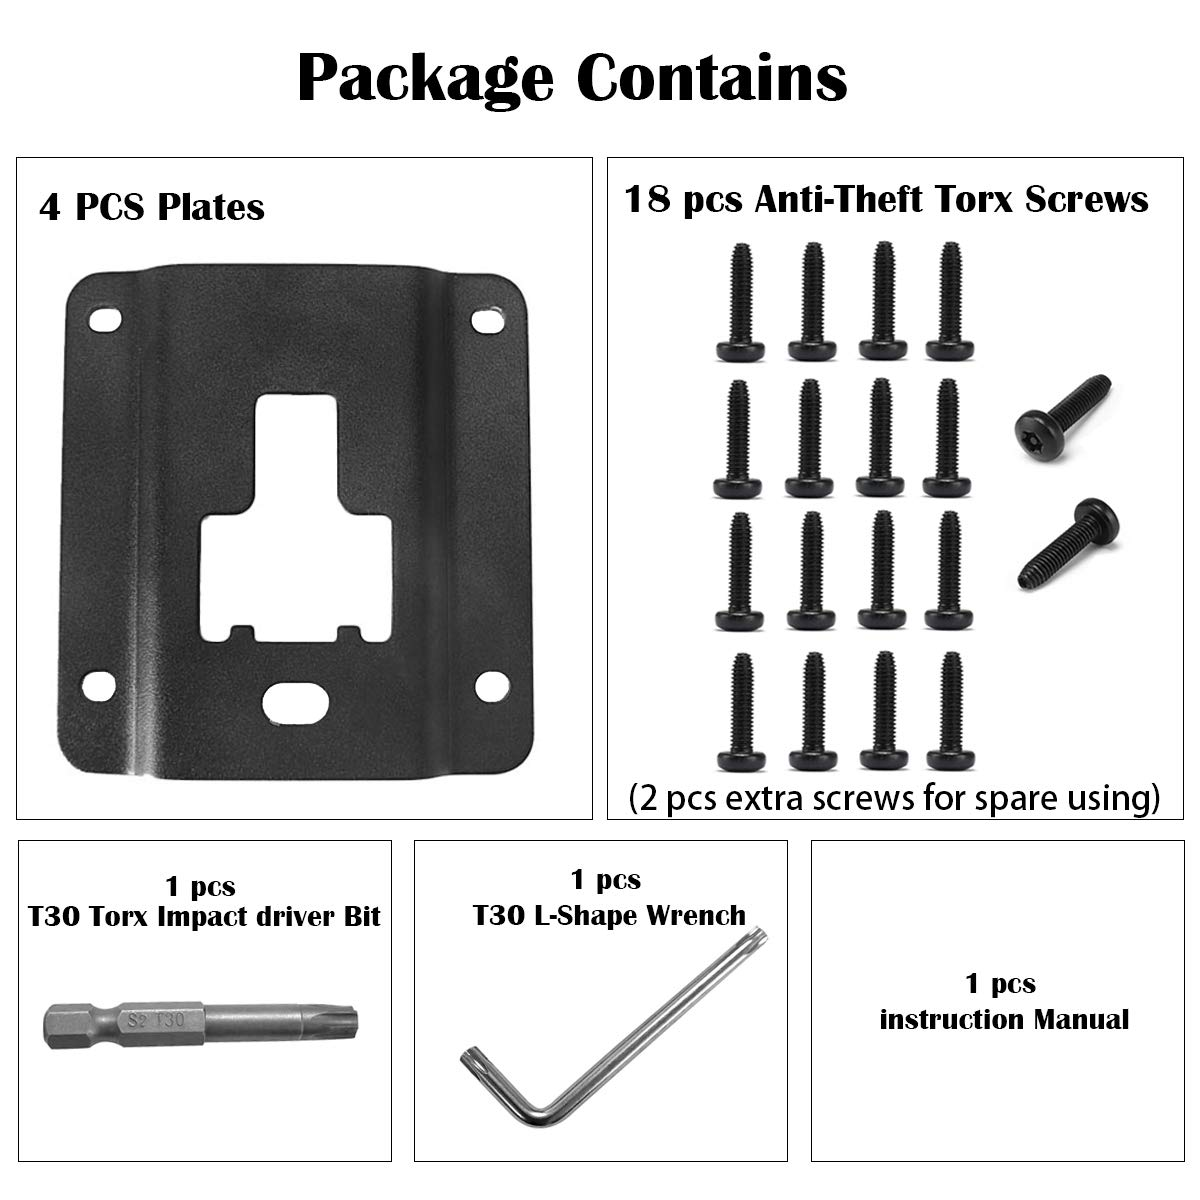 4 pcs Truck Bed Cargo Tie Down Brackets Plates for Ford F150 F250 F350 2015-2018 Replacement of Ford FL3Z-9928408-AB Bed Load Hook Reinforcement Panel Accessories with 18 pcs Torx Screws/& Install Tool